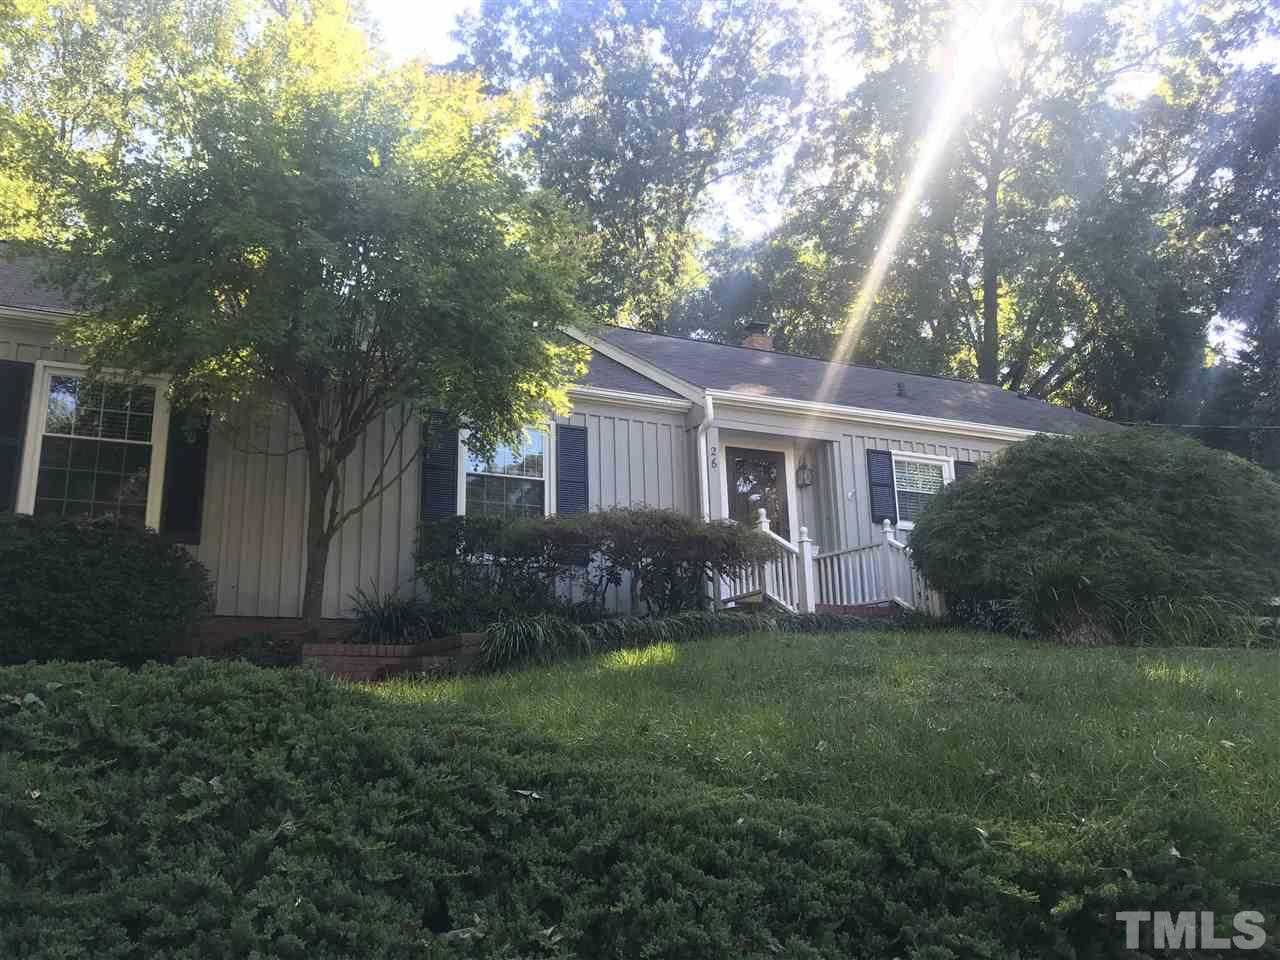 $2,995 - 4Br/3Ba -  for Sale in Wake Hills, Raleigh